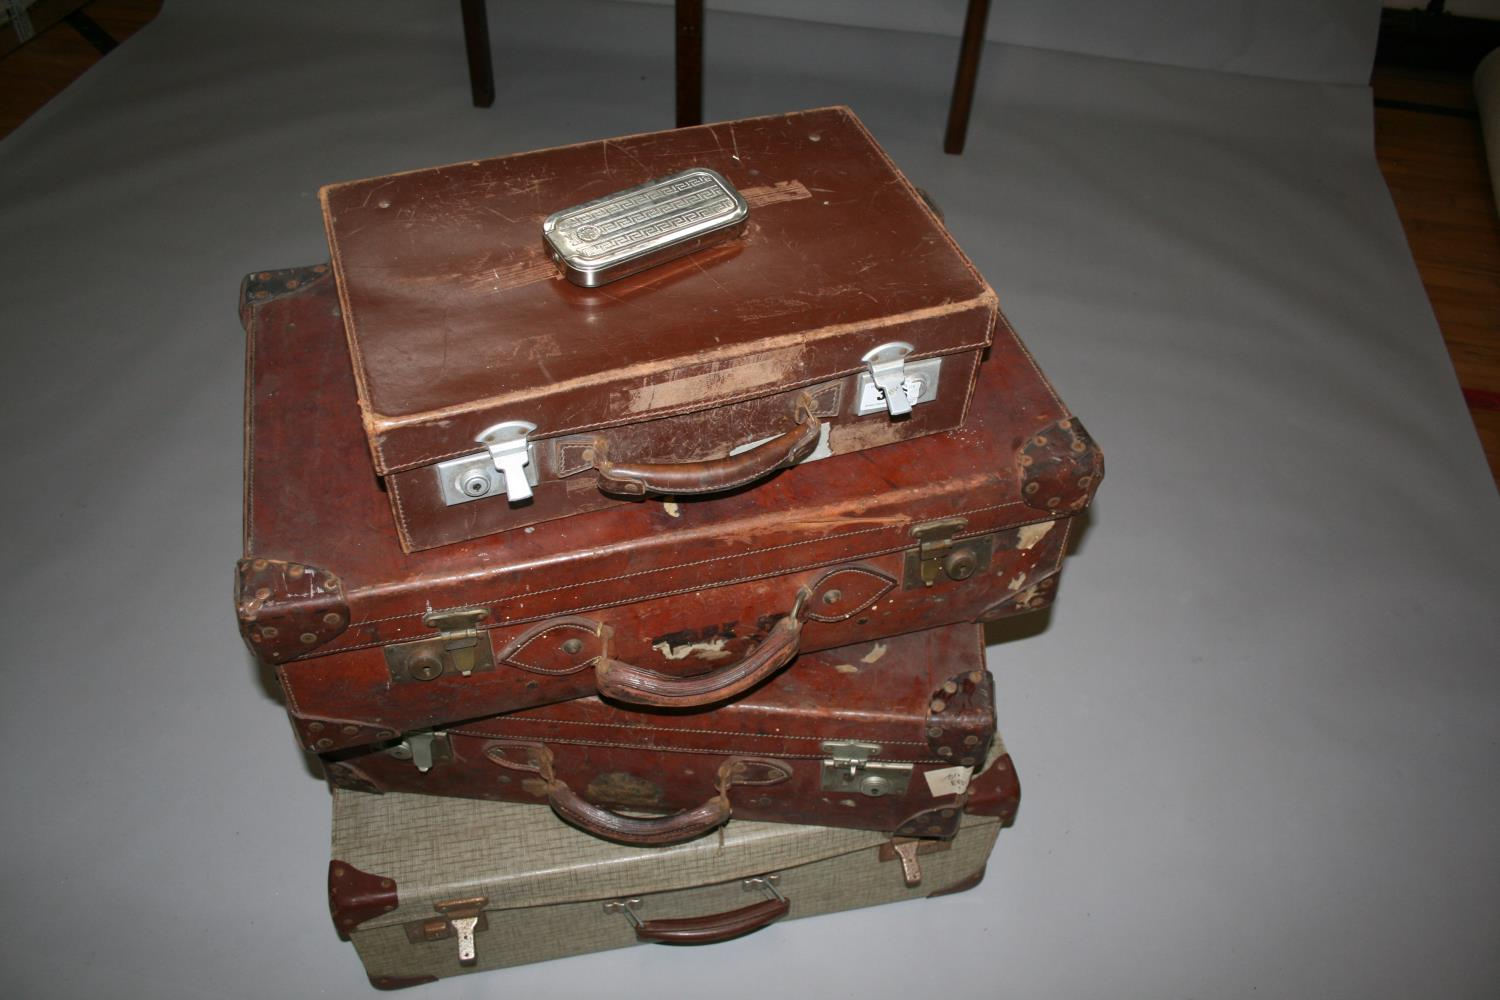 Four vintage leather suitcases, with compass, blade sharpener and wood plain. - Image 2 of 7